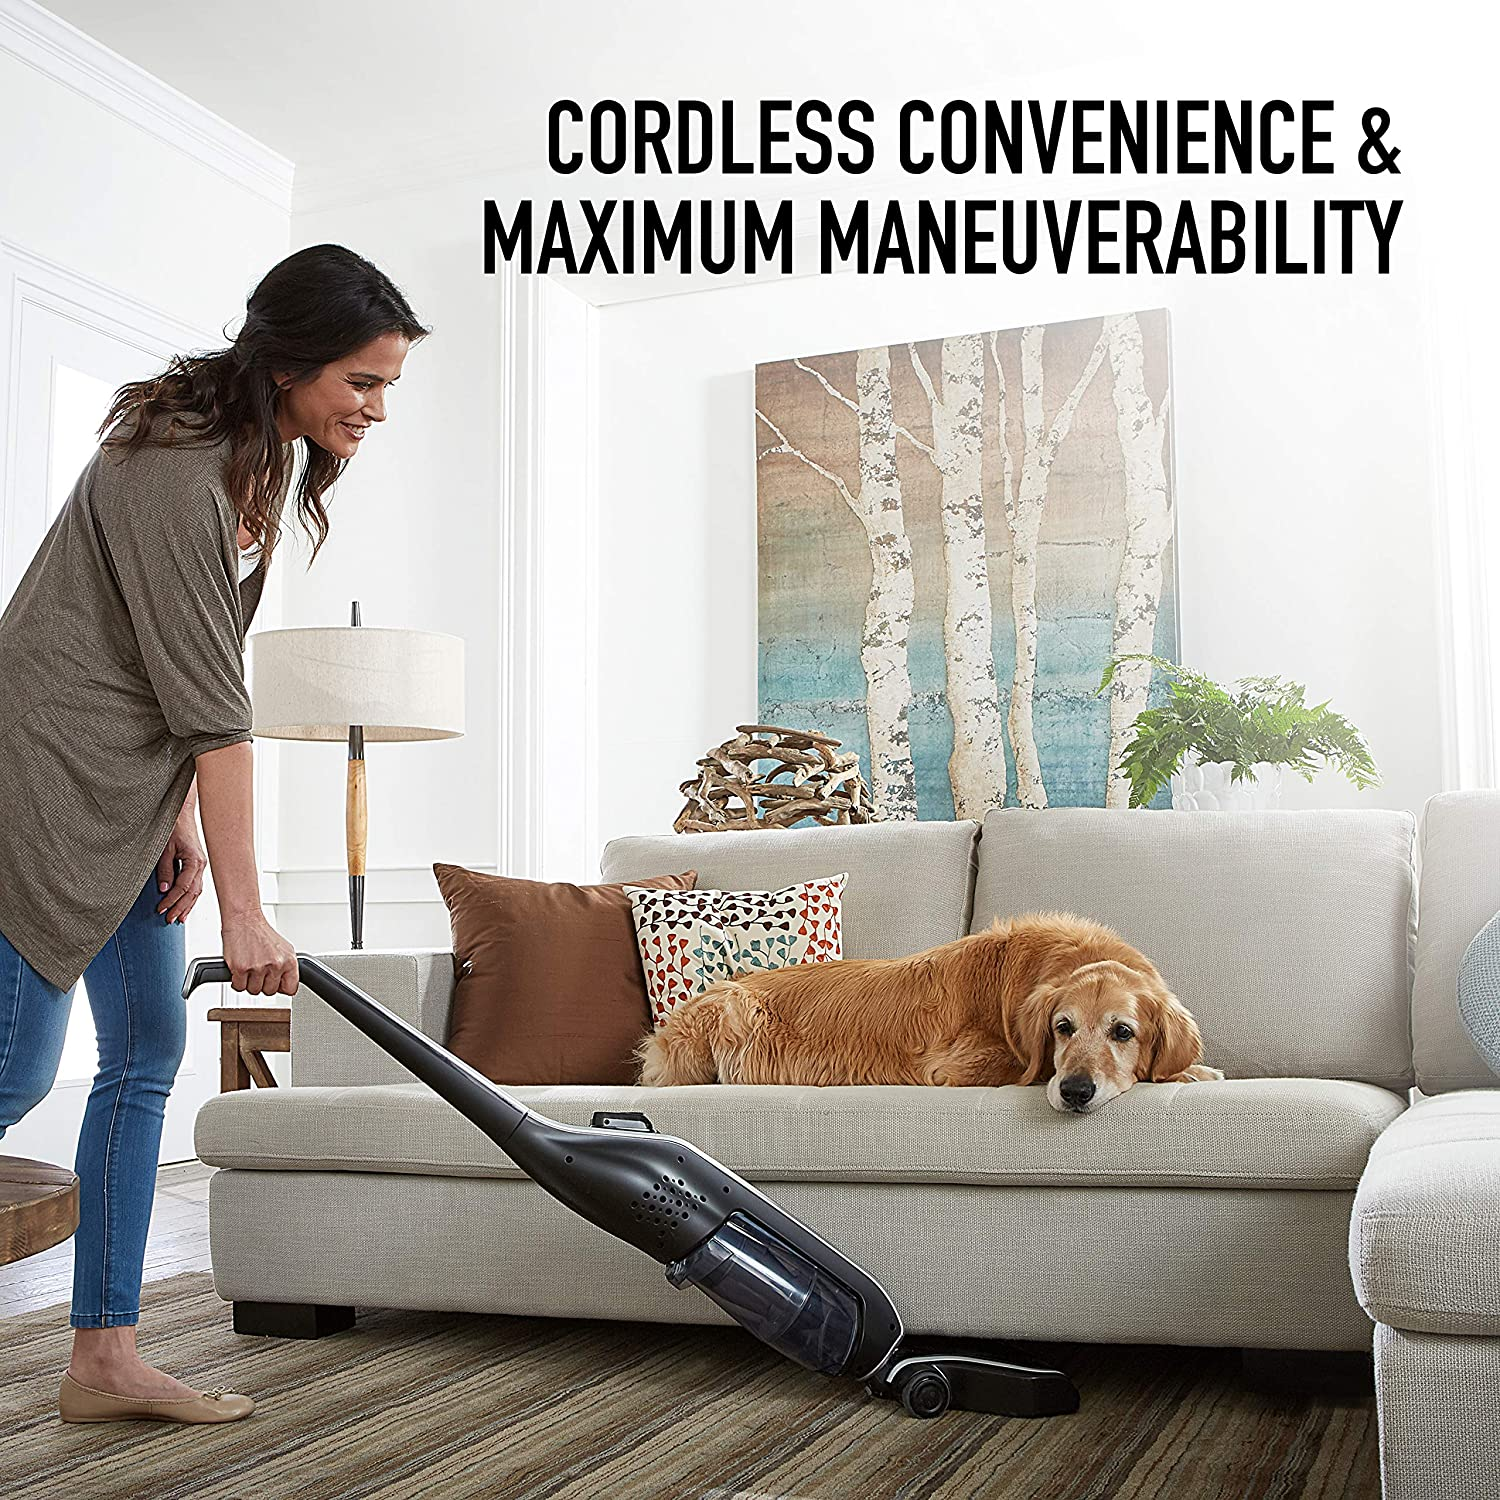 Hoover Linx Cordless Stick Vacuum Cleaner, Lightweight, BH50010